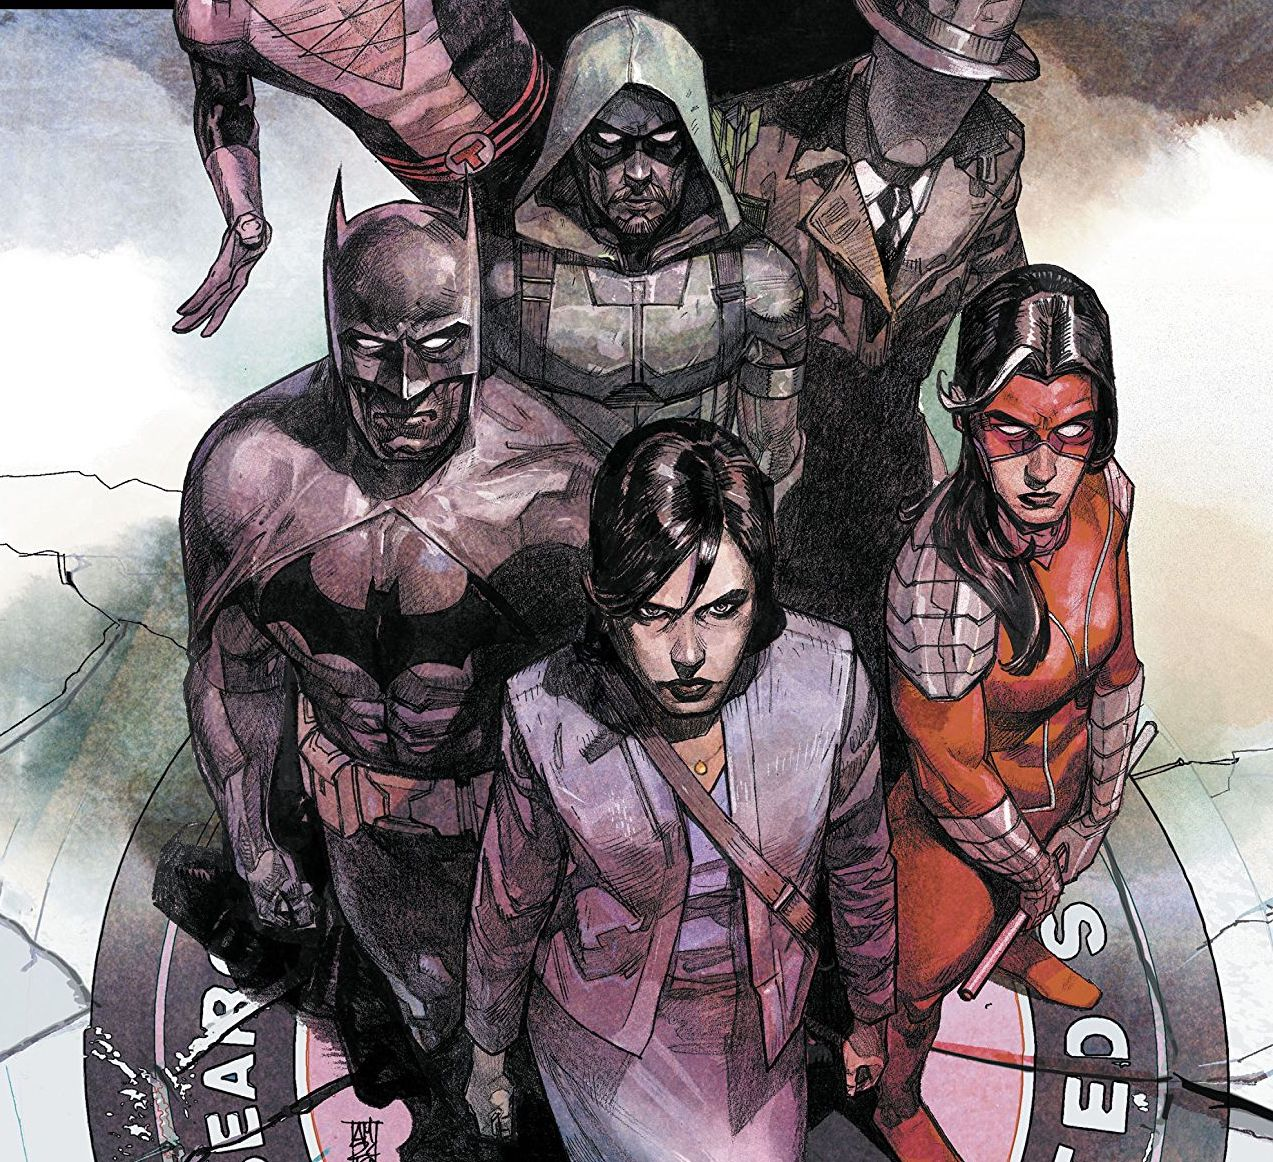 Event Leviathan #2 review: stretching my patience